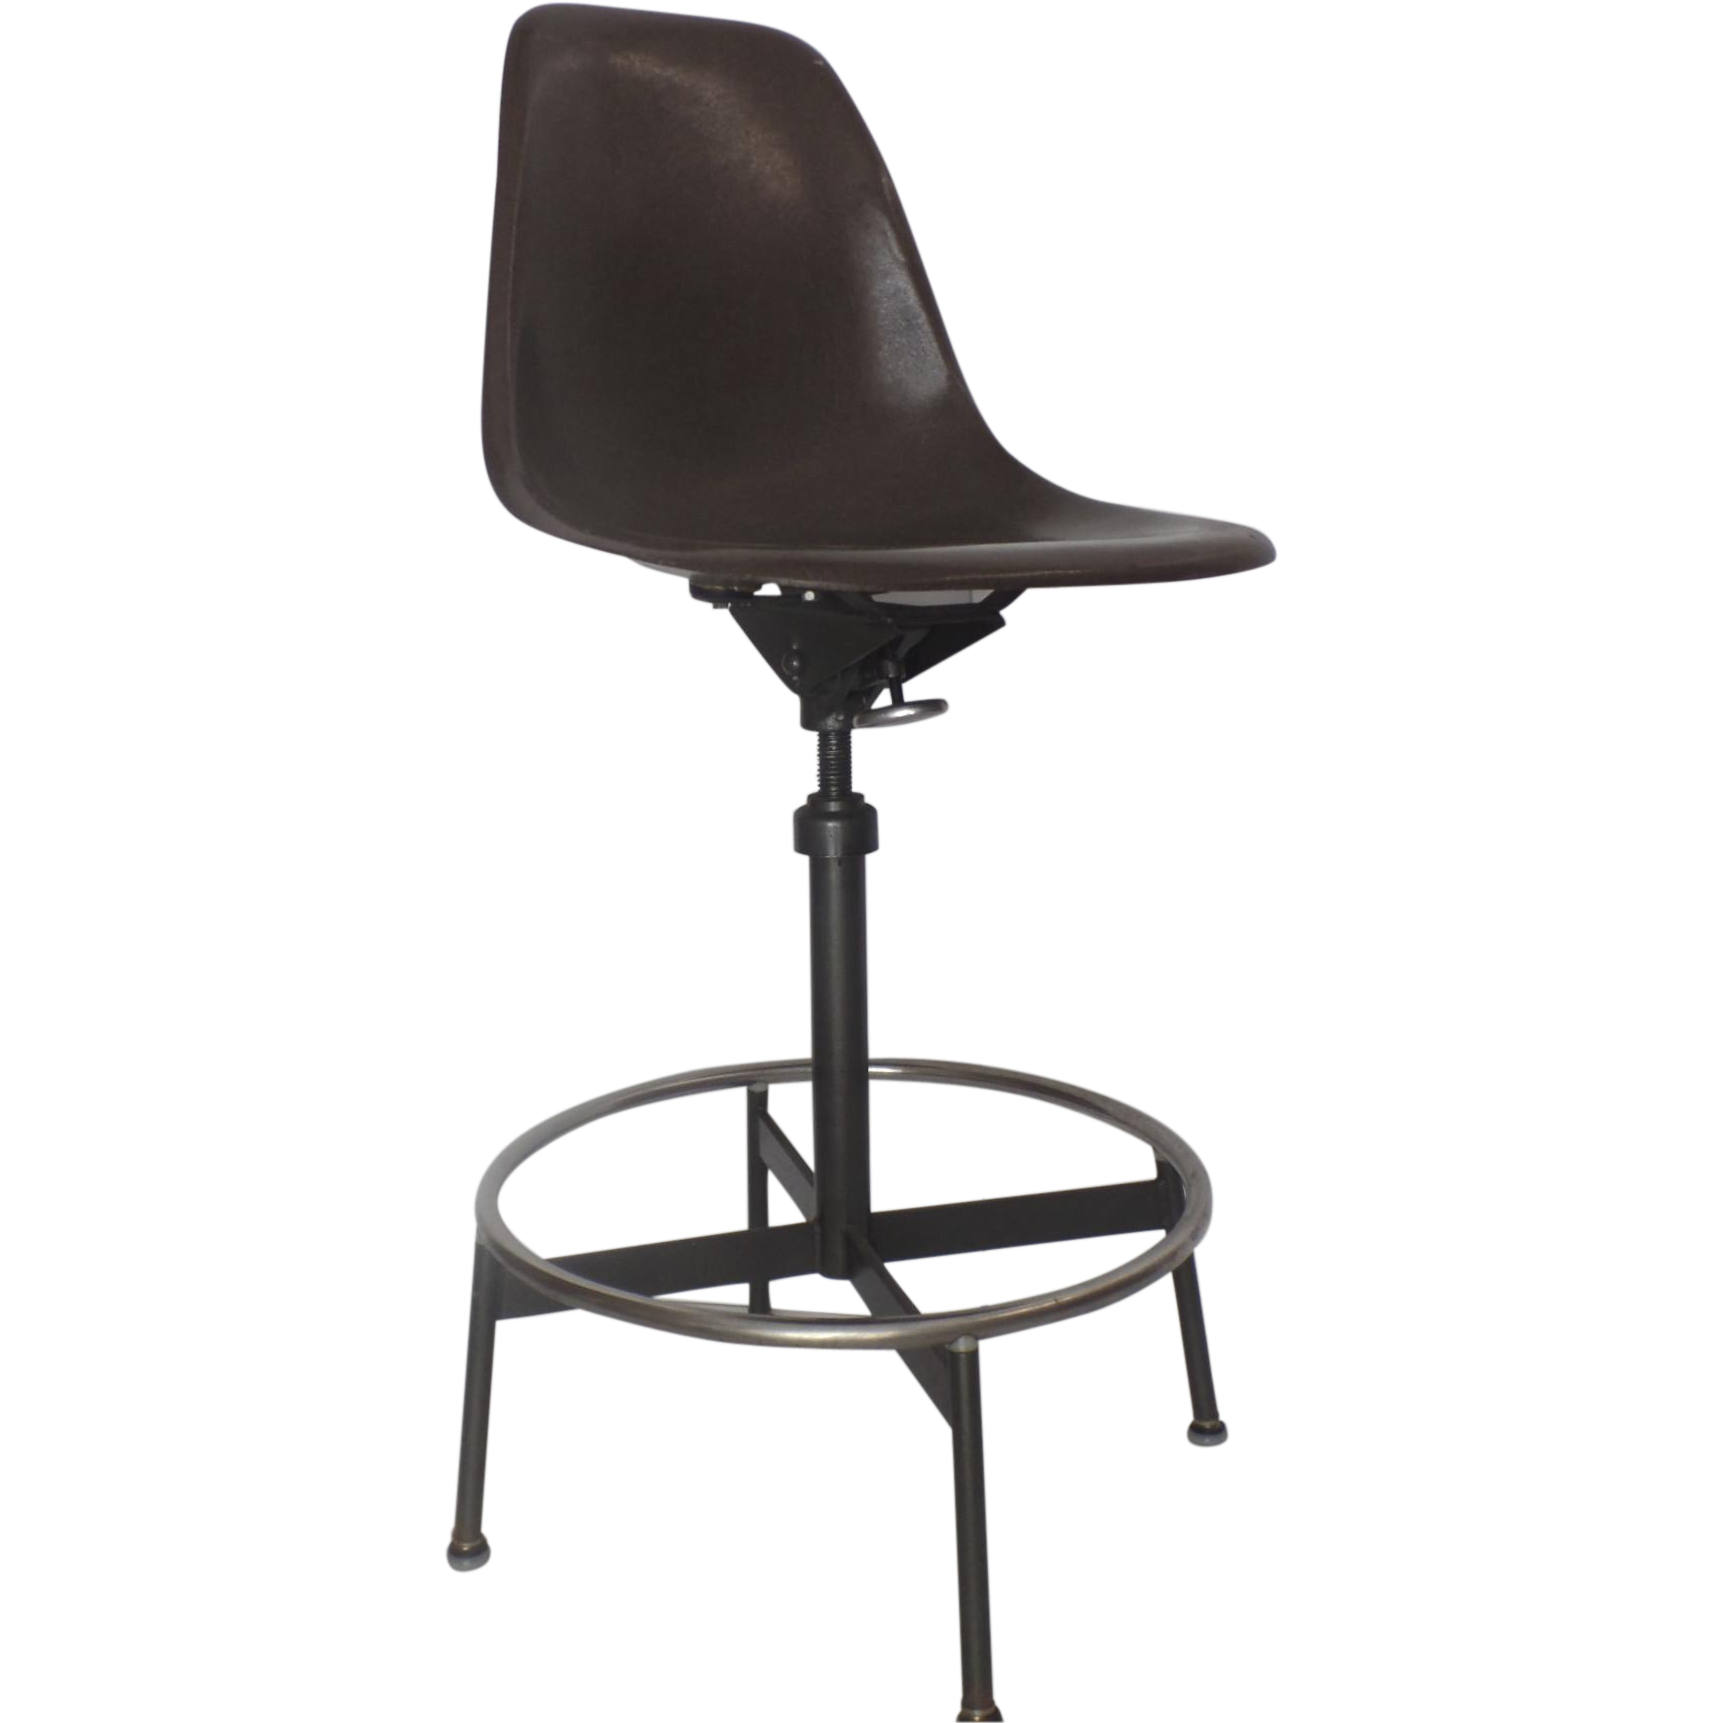 eames fiberglass shell drafting architects stool chair mid century from blacktulip on ruby lane. Black Bedroom Furniture Sets. Home Design Ideas